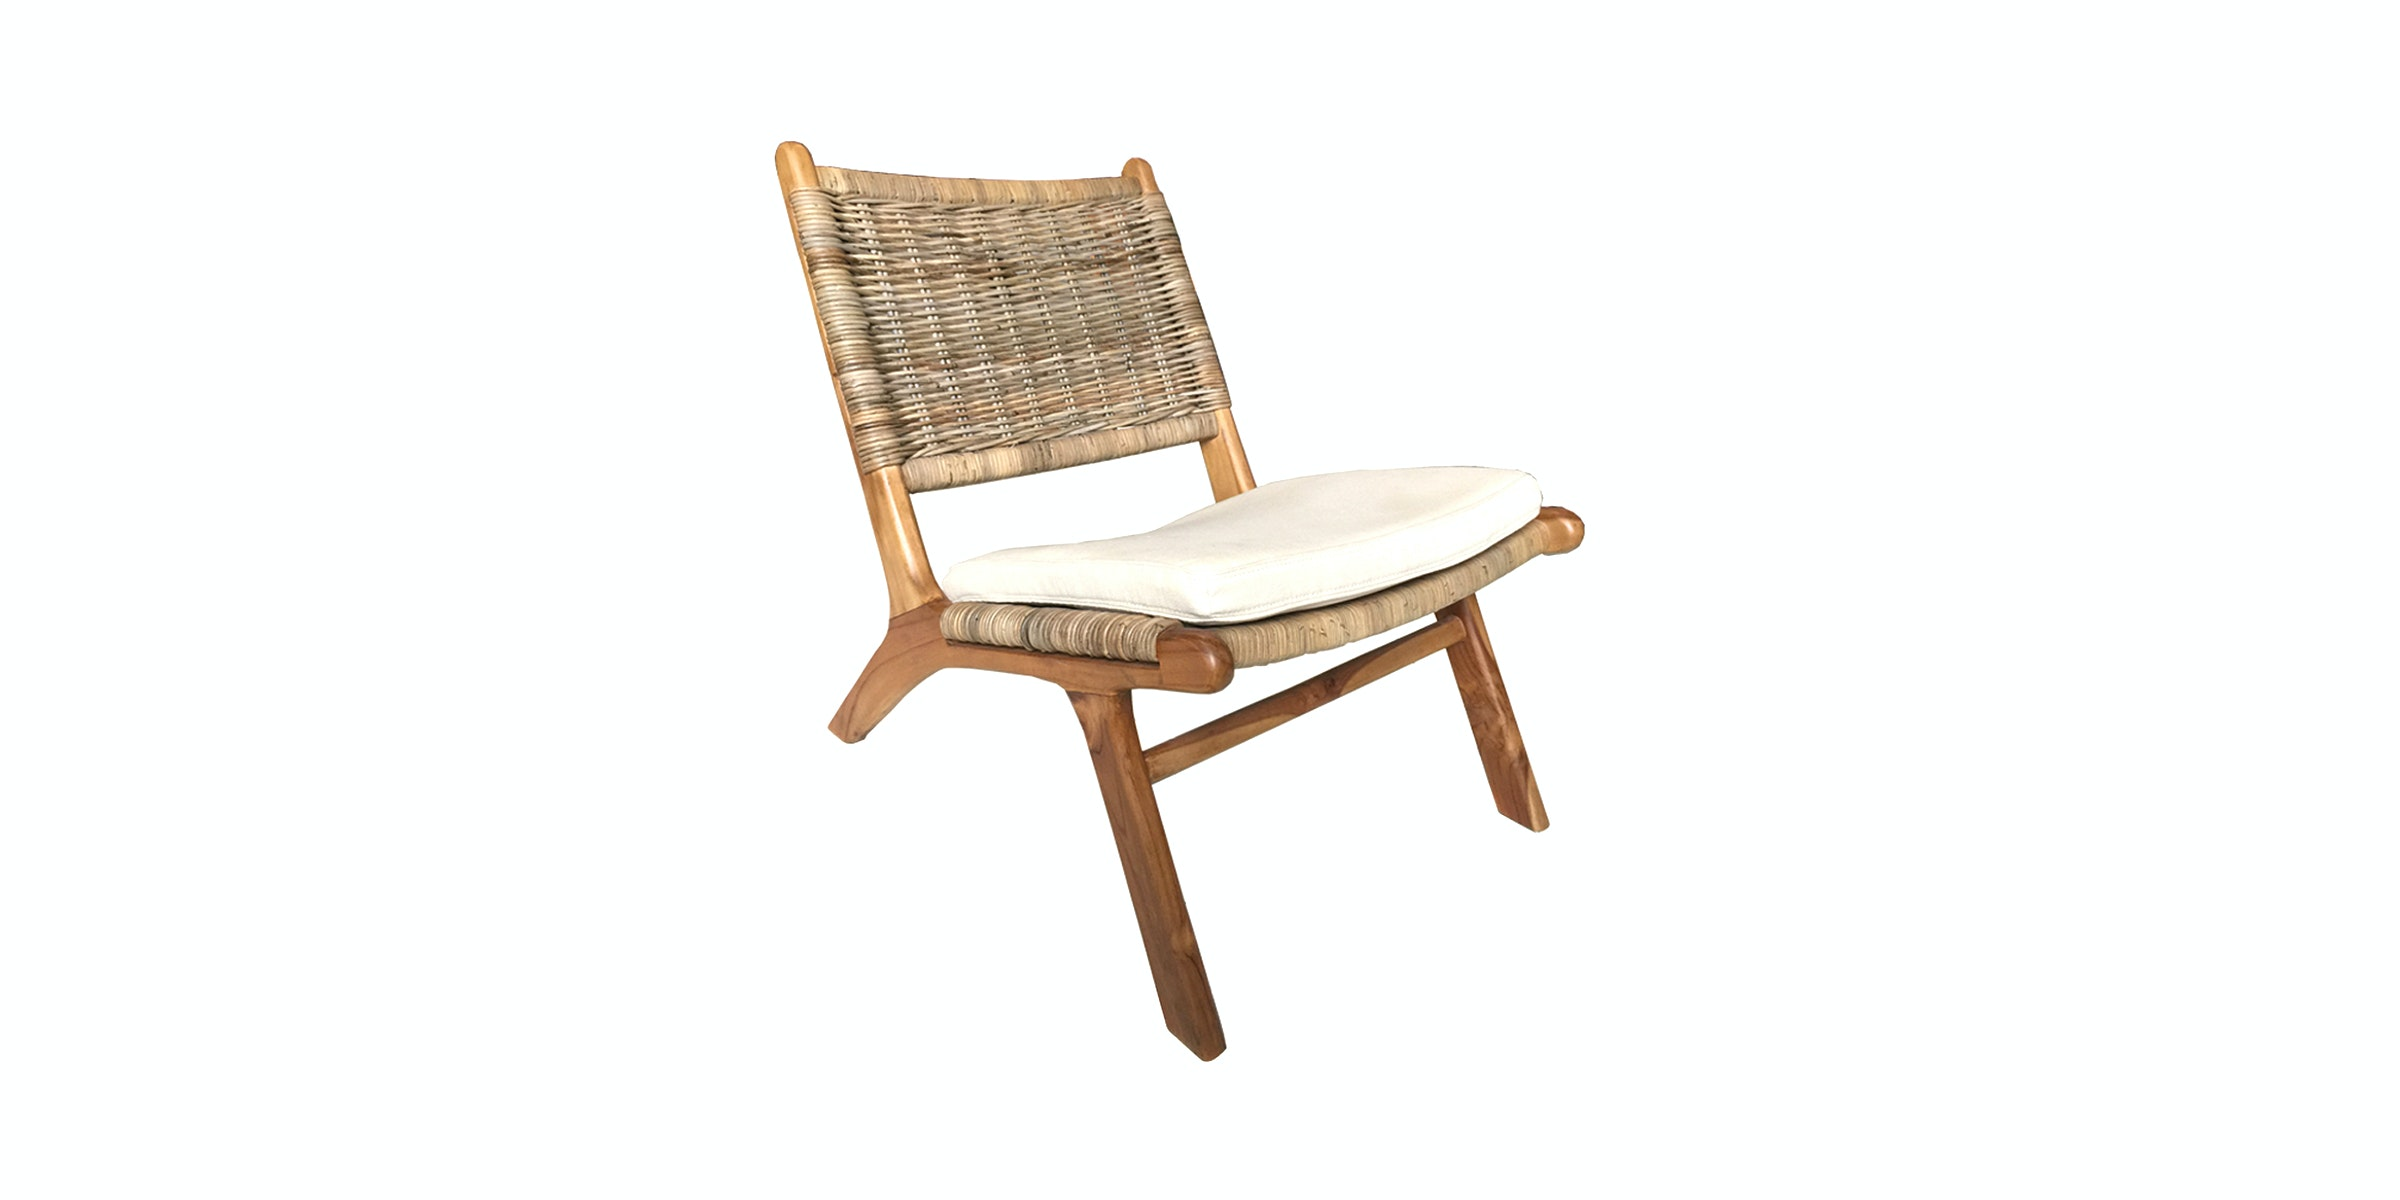 Viku Furniture Mahanta Chair